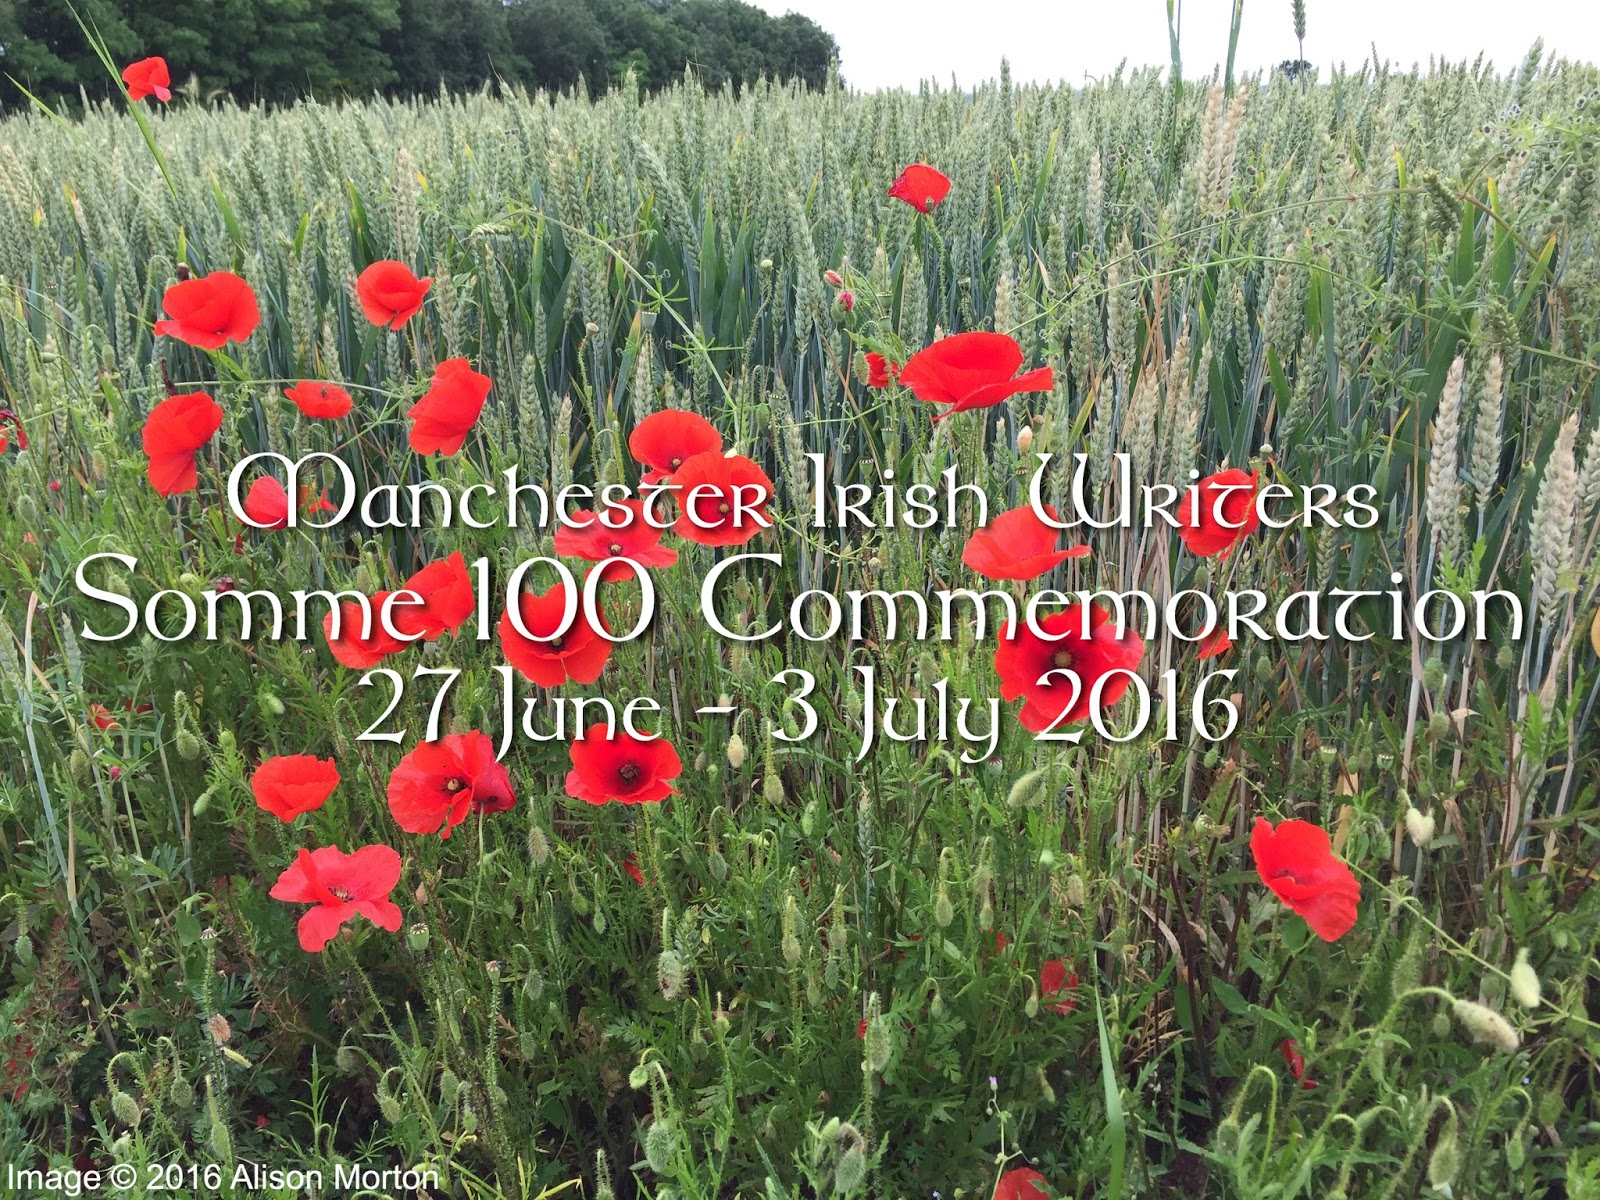 Manchester Irish Writers Testimonies Of Trauma The Somme And Other